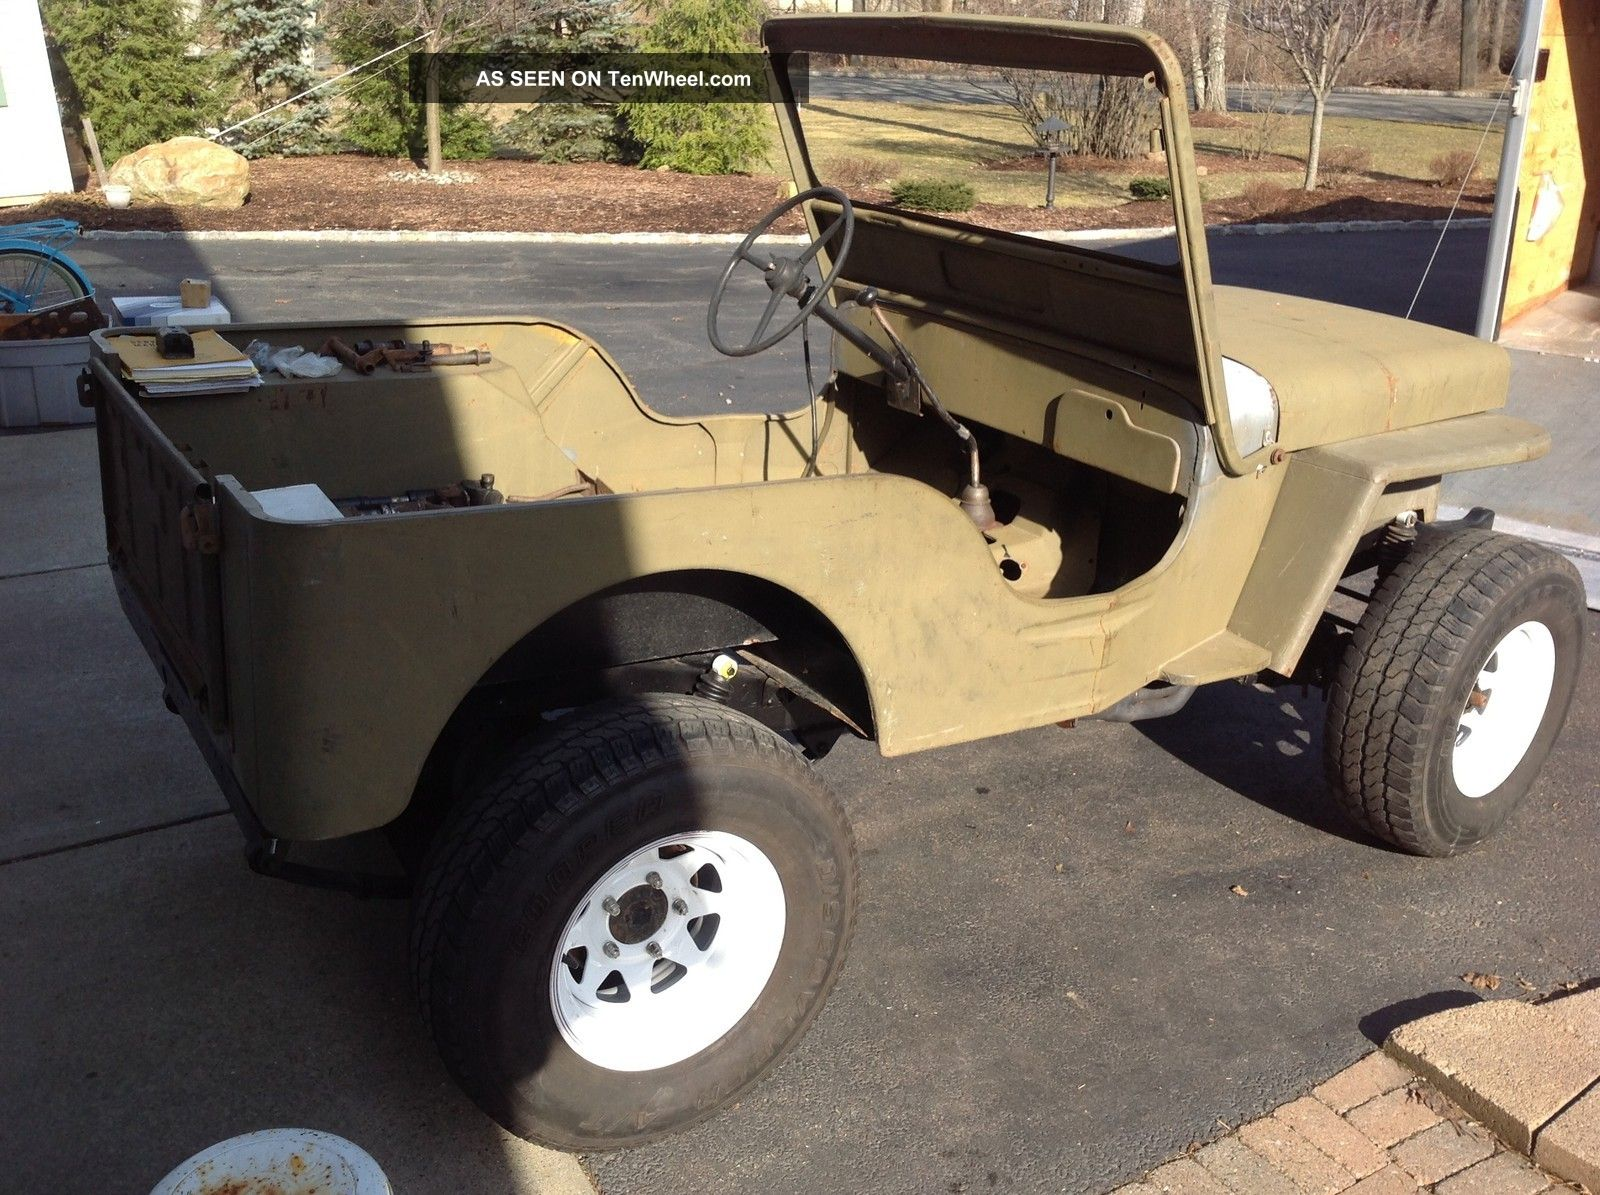 1952 Willys Cj3a - Restomod Style Build Willys photo